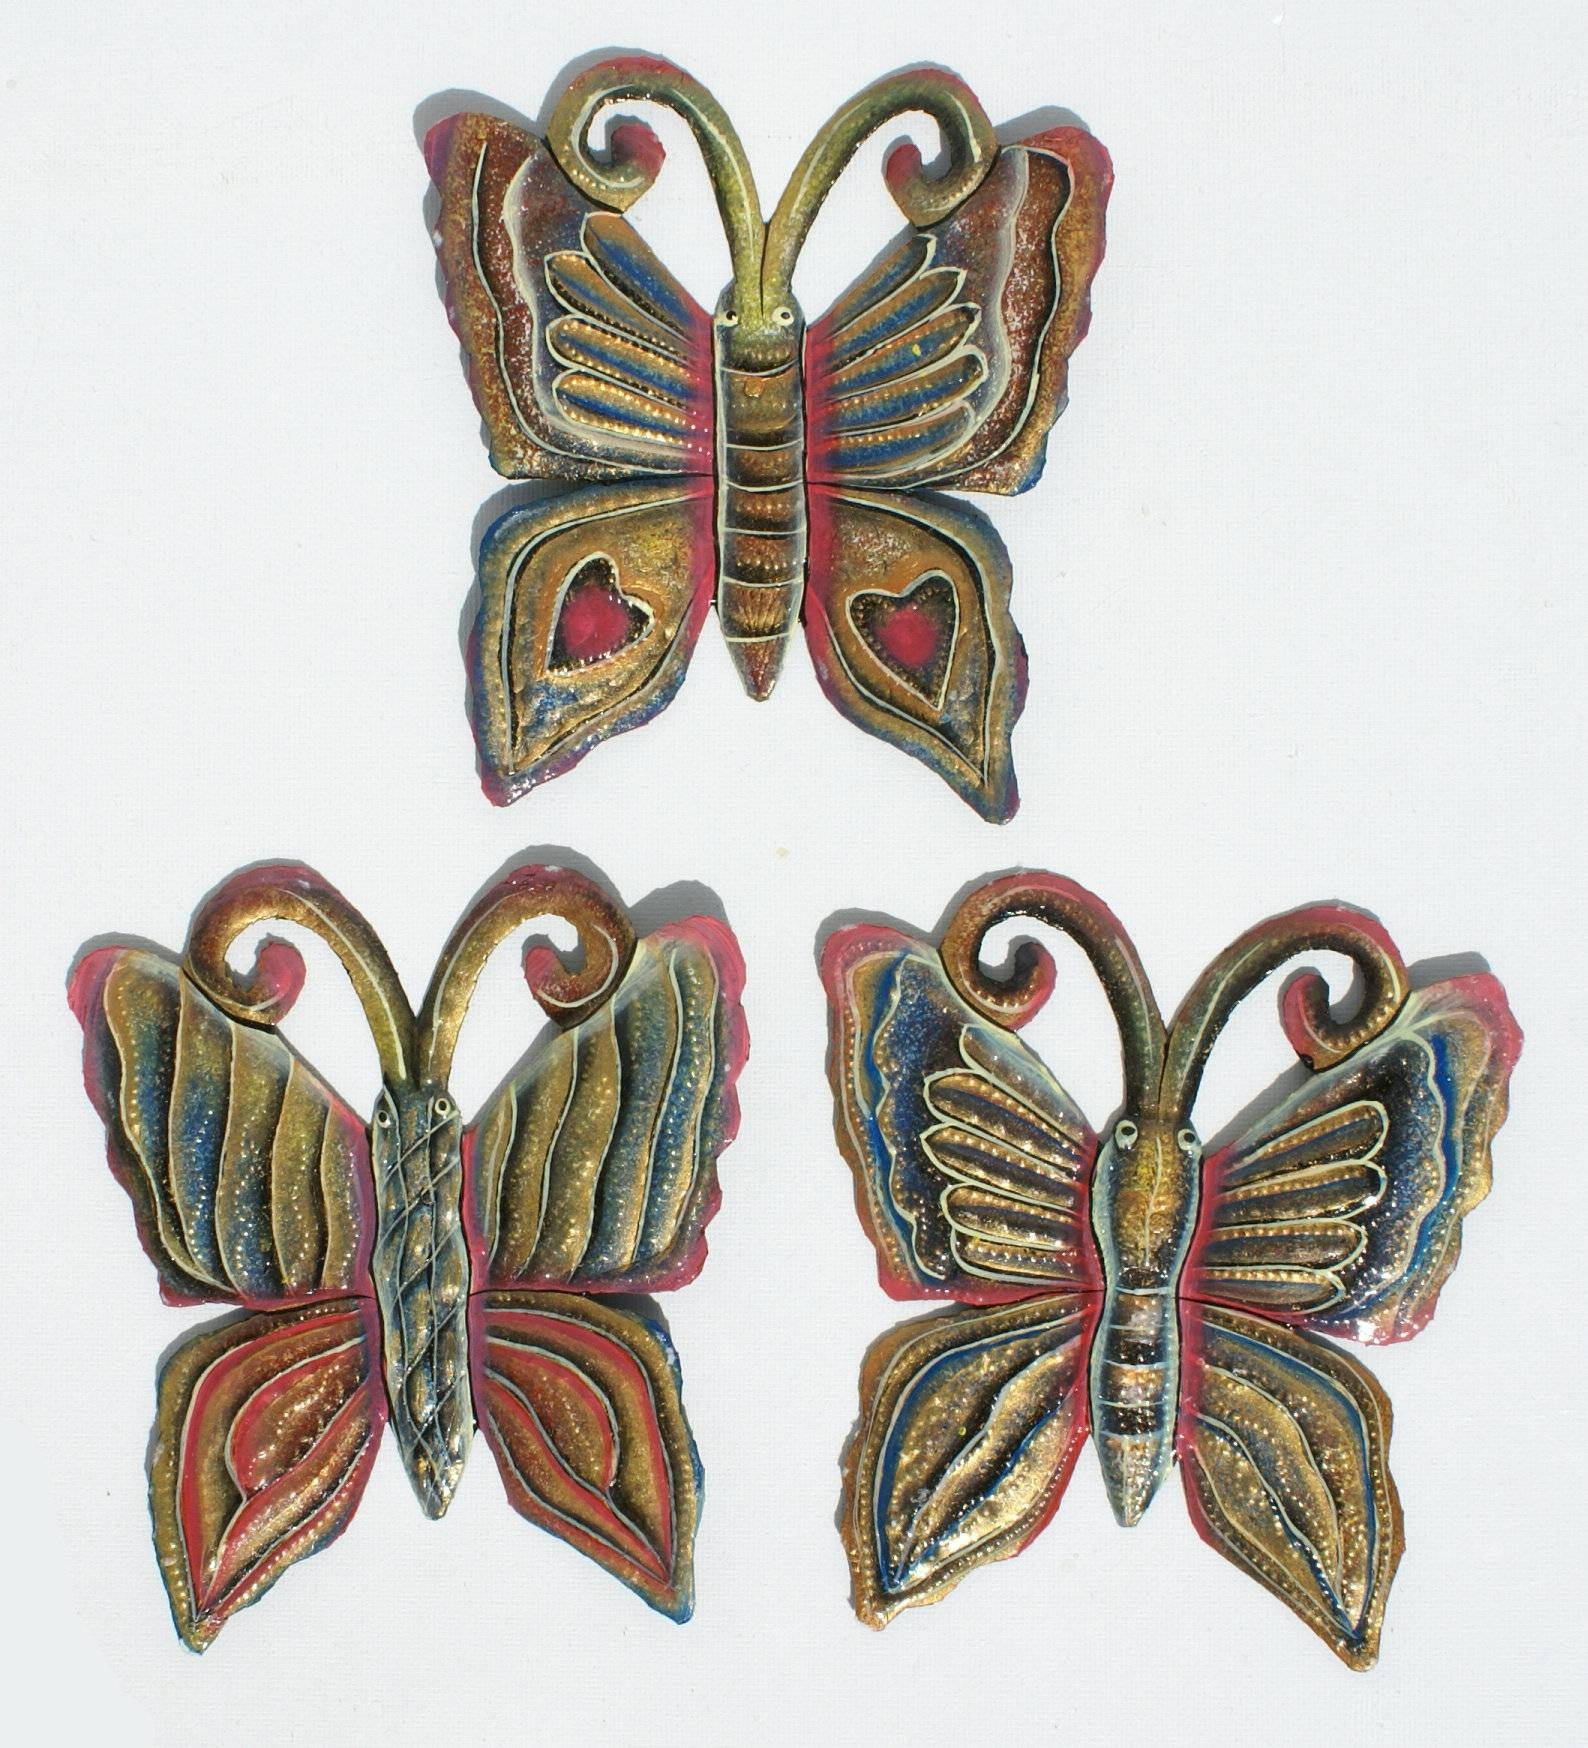 Set 3 Butterflies Colored Handmade Metal Haitian Art For Sale Wall With Latest Caribbean Metal Wall Art (View 14 of 20)